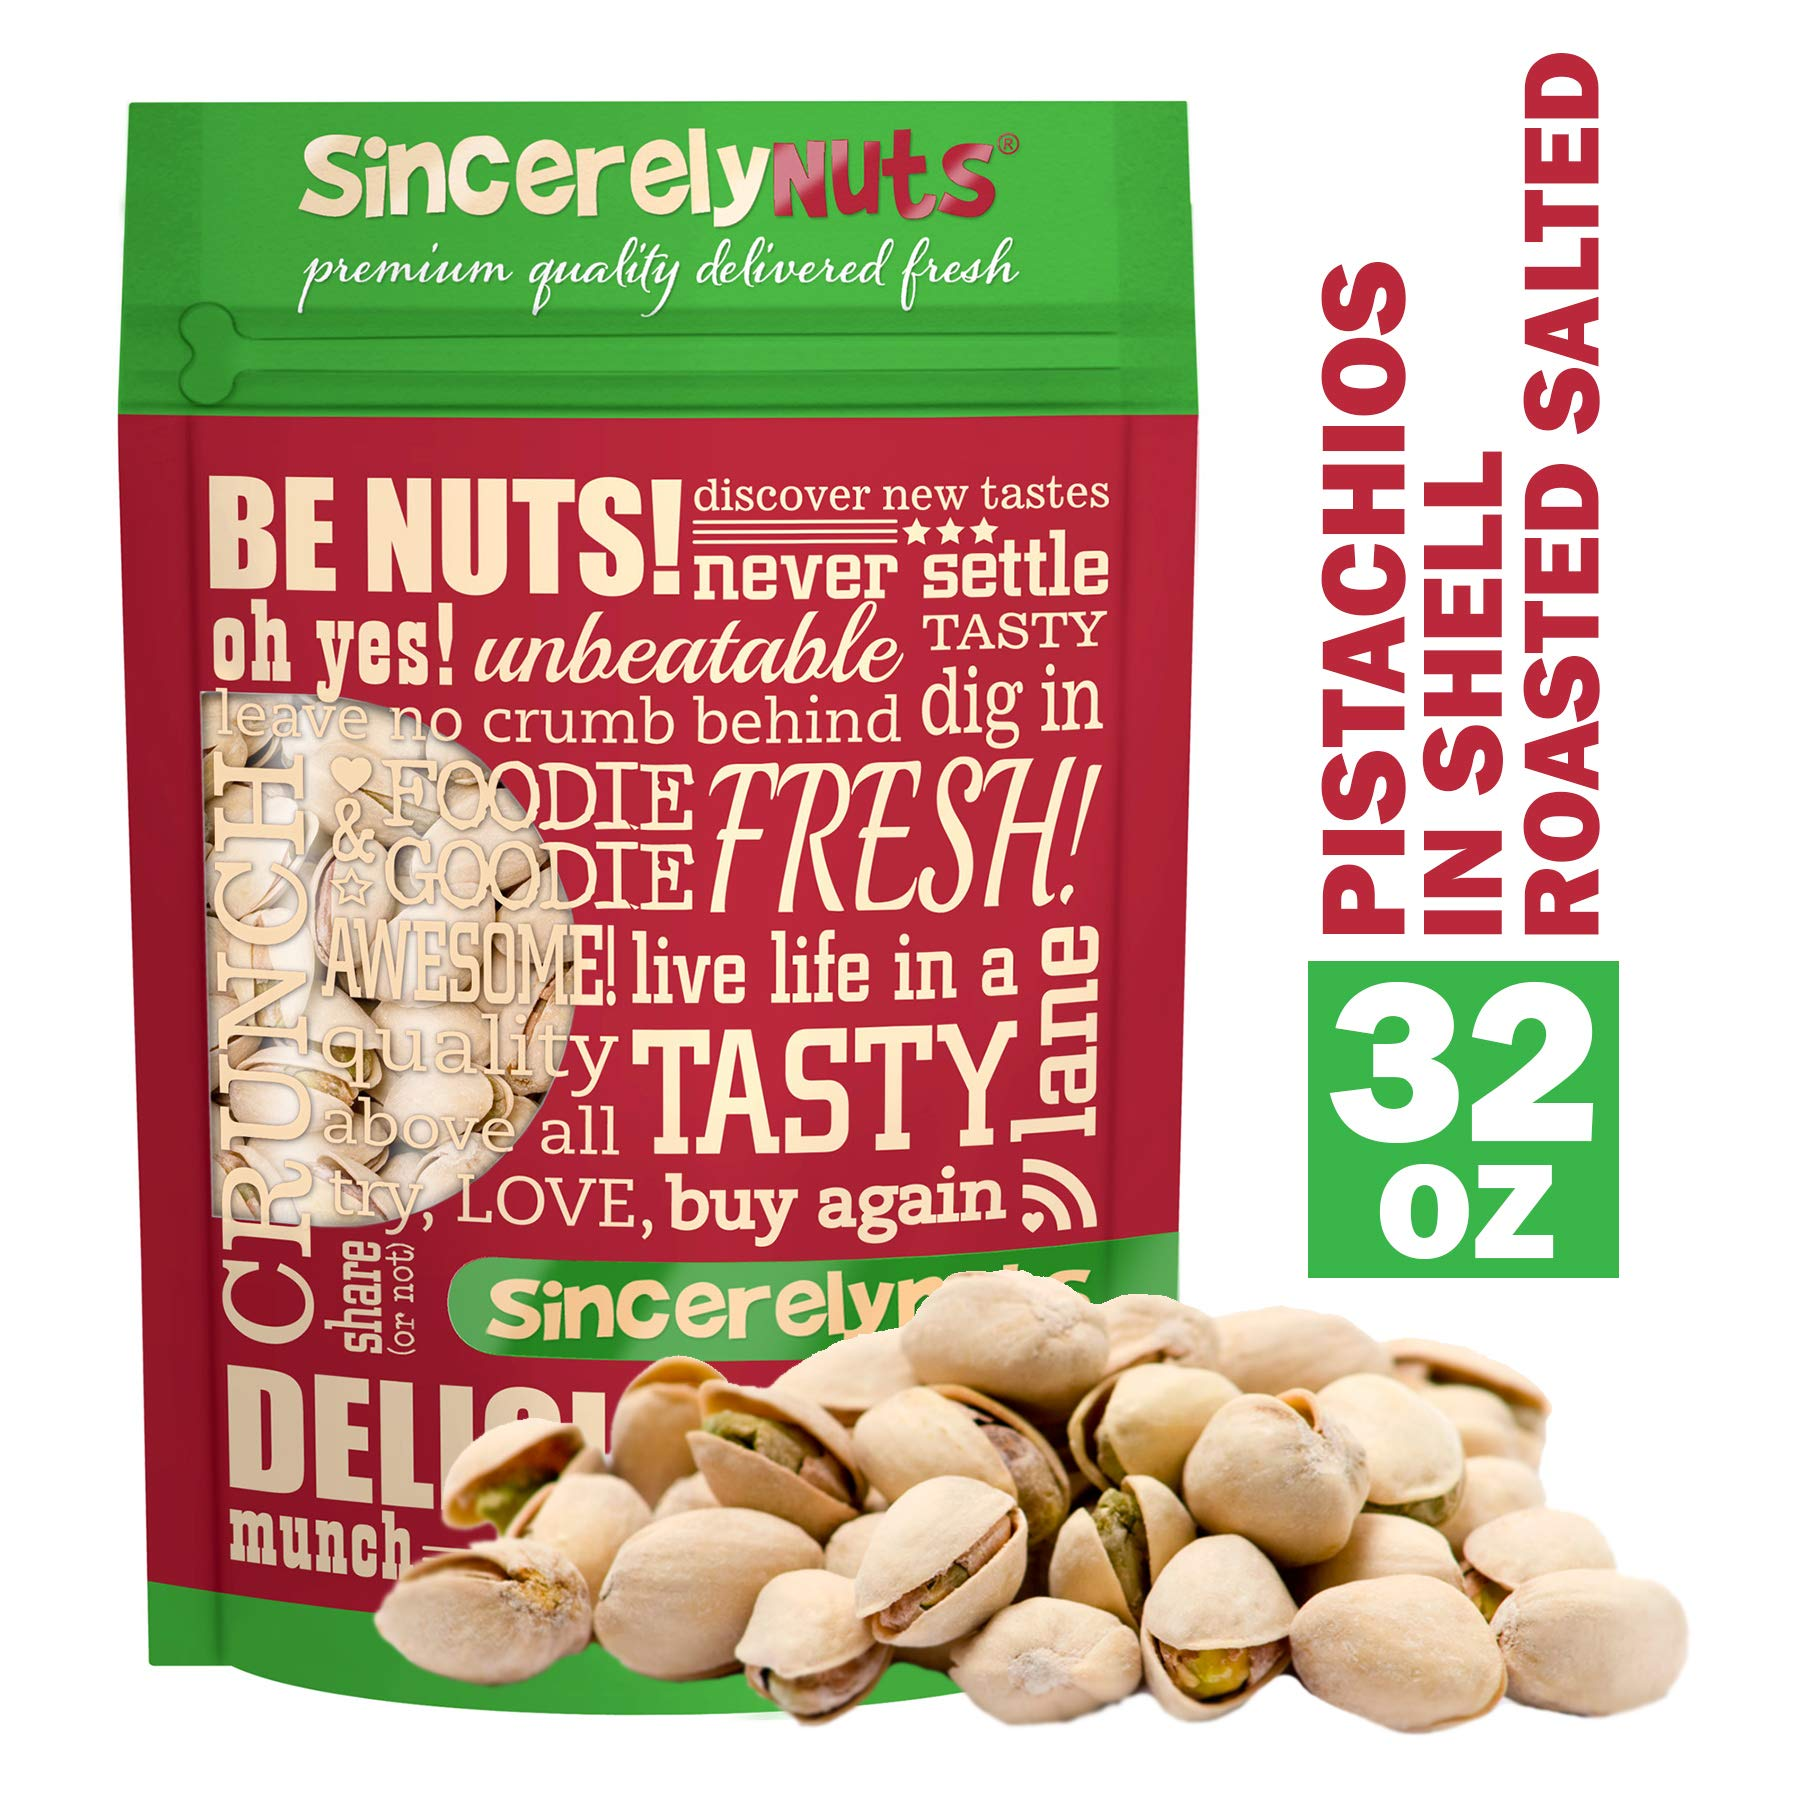 Sincerely Nuts Large Pistachios Roasted & Salted in Shell - 2Lb. Bag | Healthy Snack Food | Great for Cooking | Source of Fiber, Protein, Vitamins & Minerals | Gourmet Flavor | Kosher & Gluten Free by Sincerely Nuts